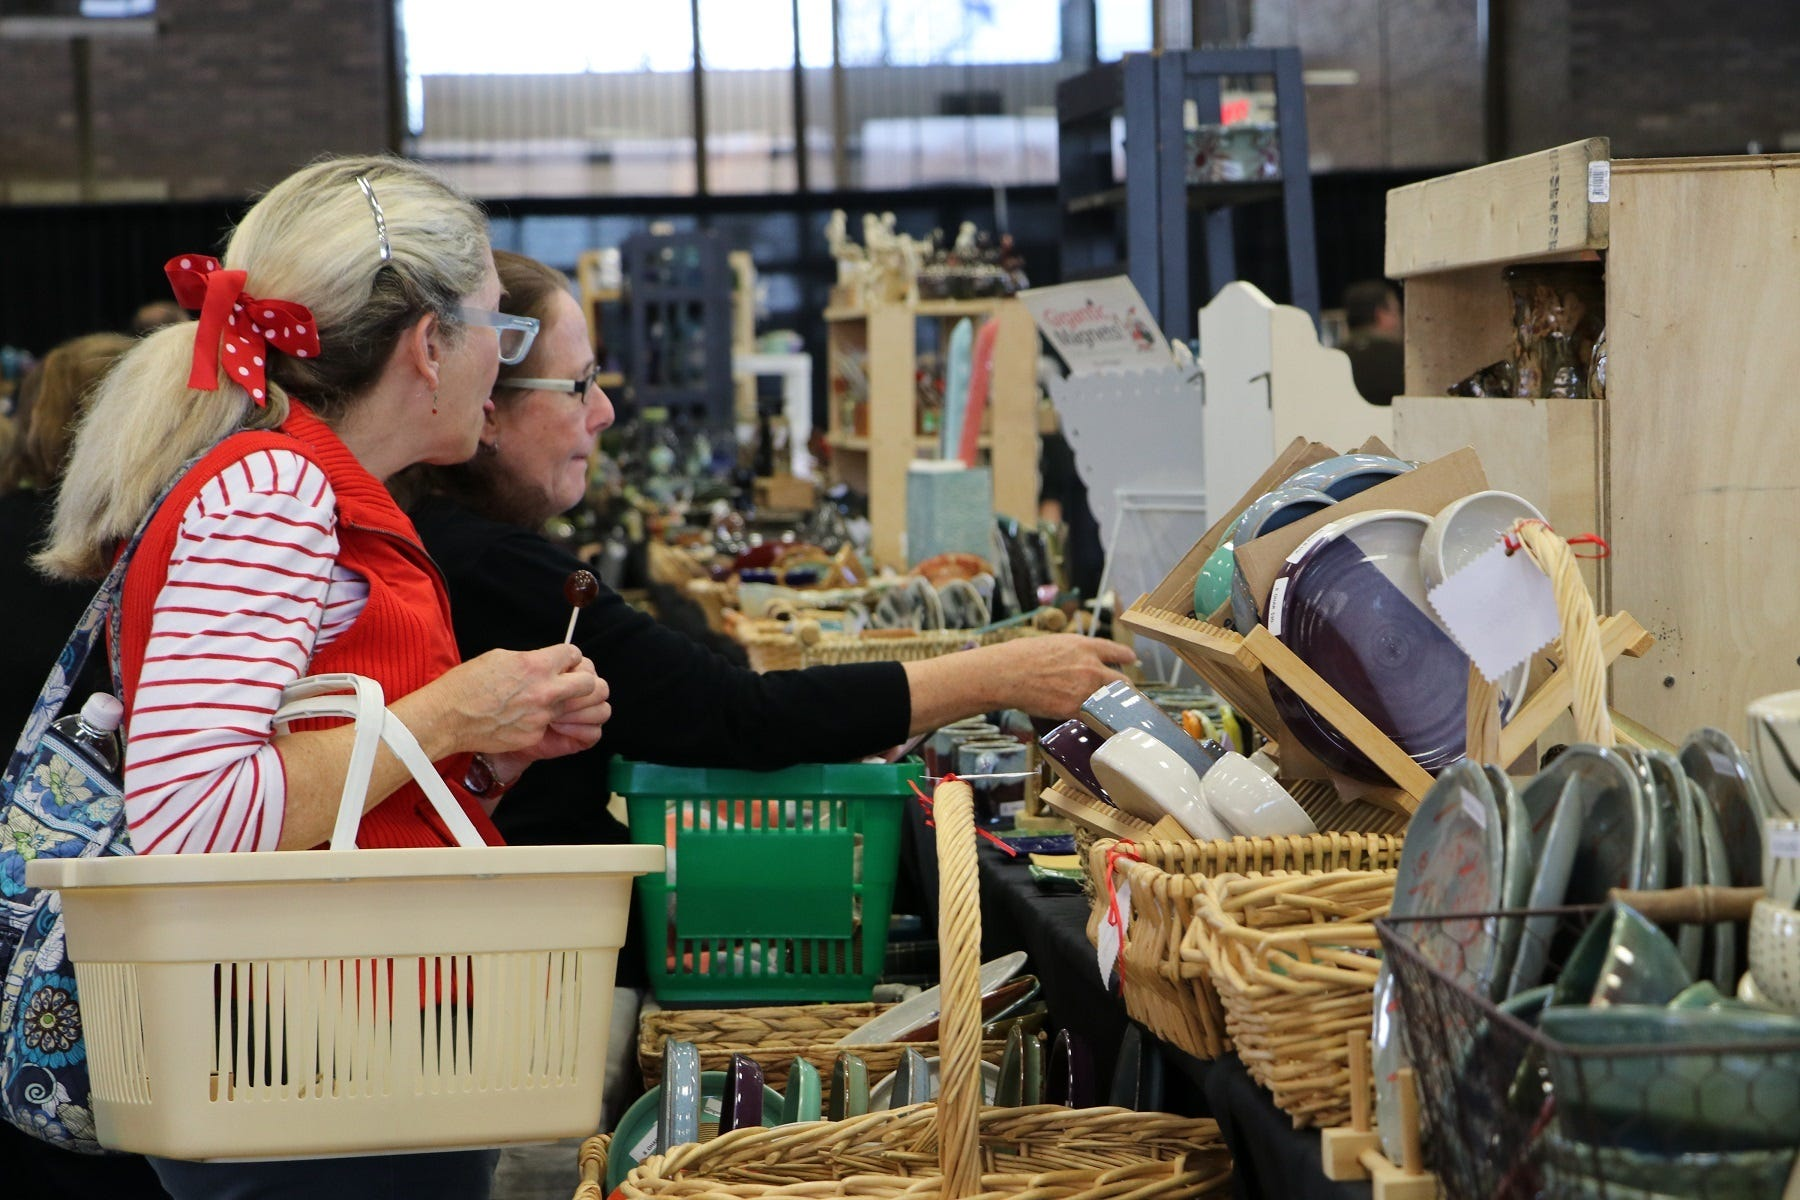 More than 33,000 items were sold at last year's Potters Market.